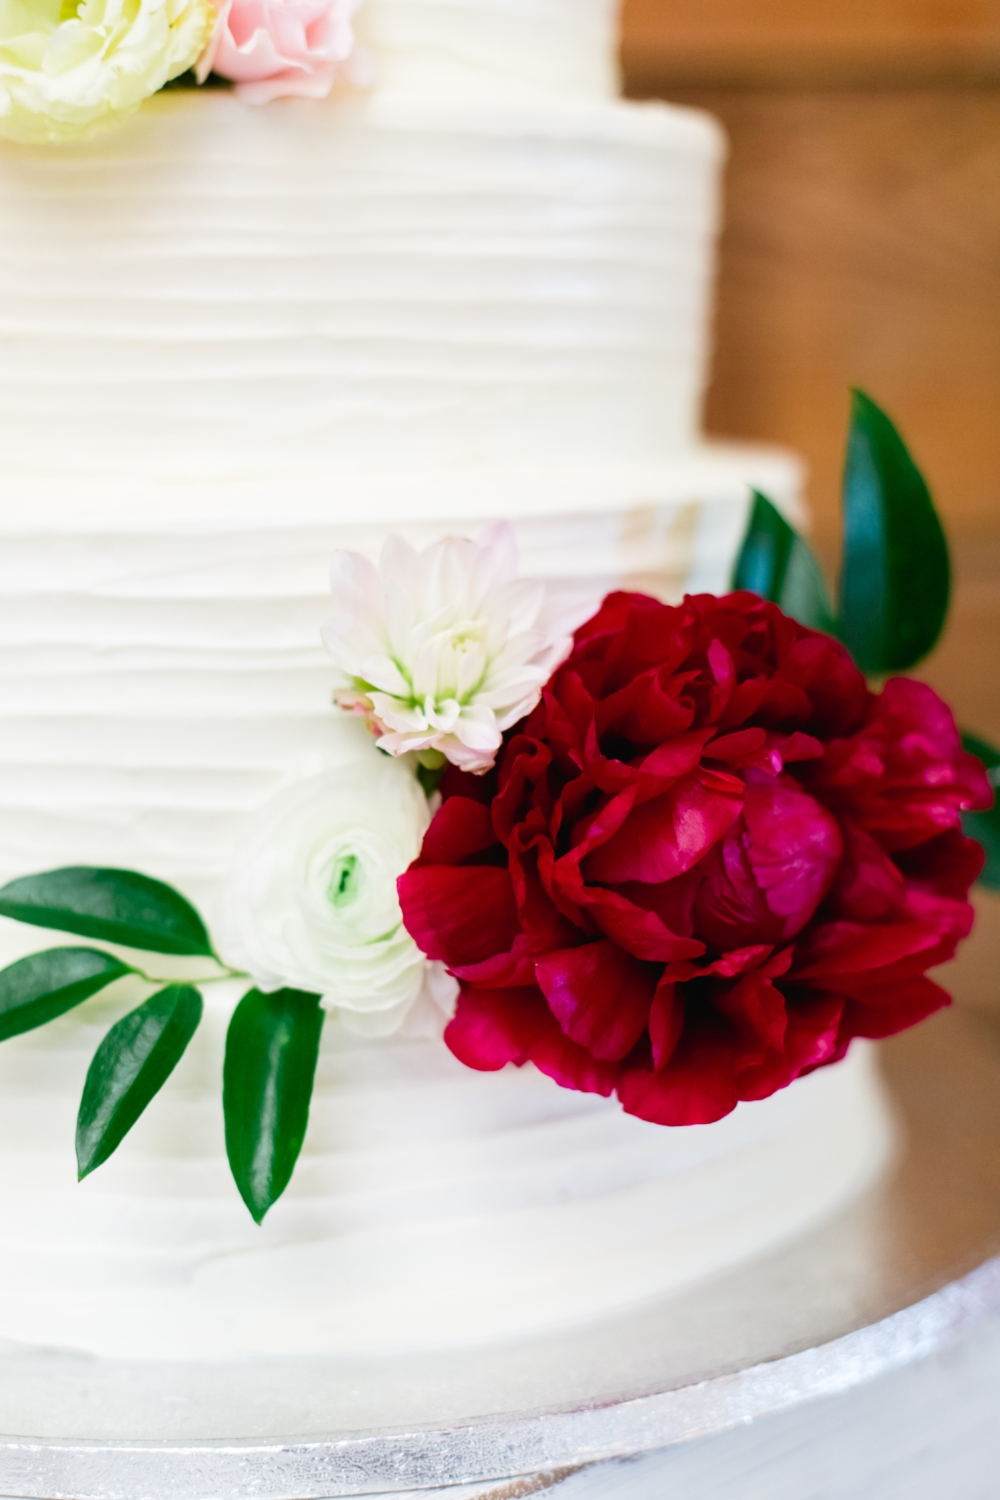 Wedding Cakes in Dallas - Dallas Wedding Flowers